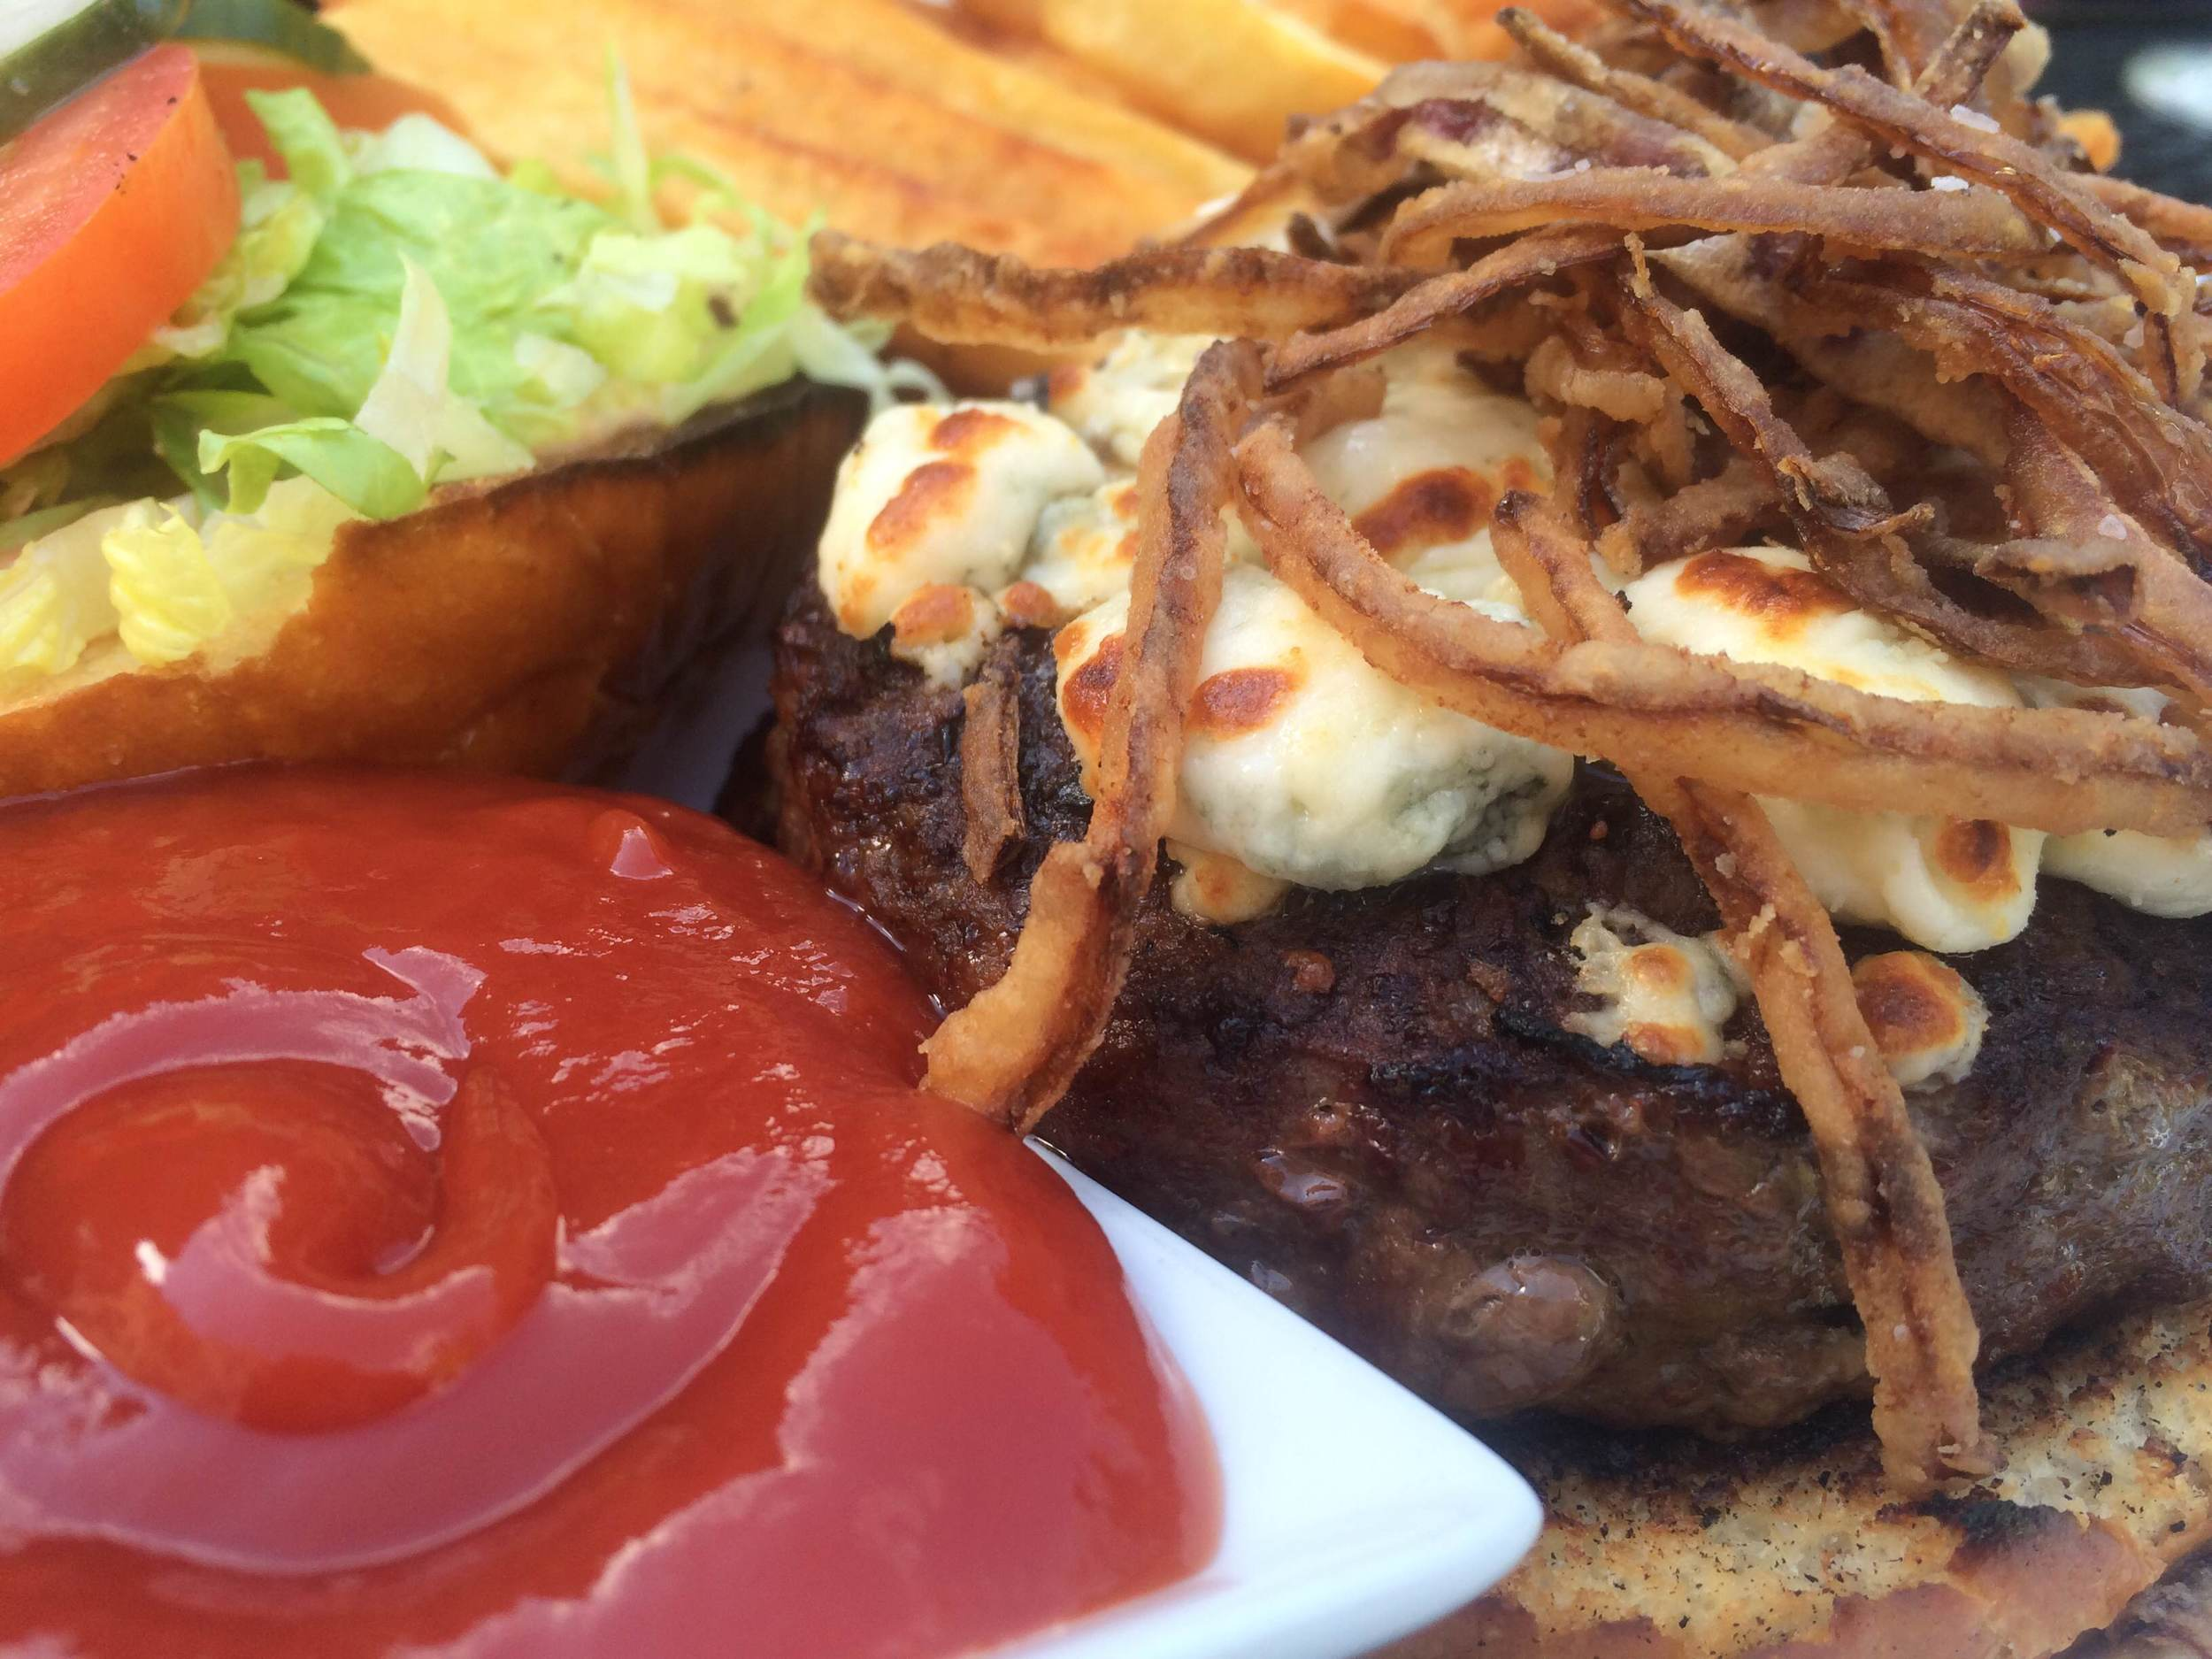 The Kobe short rib beef burger at Bistro 44 is served on a brioche bun with Stiton bleu cheese, Applewood bacon, frizzled onions, shredded lettuce, and with French fries for $14.50 on the lunch menu.